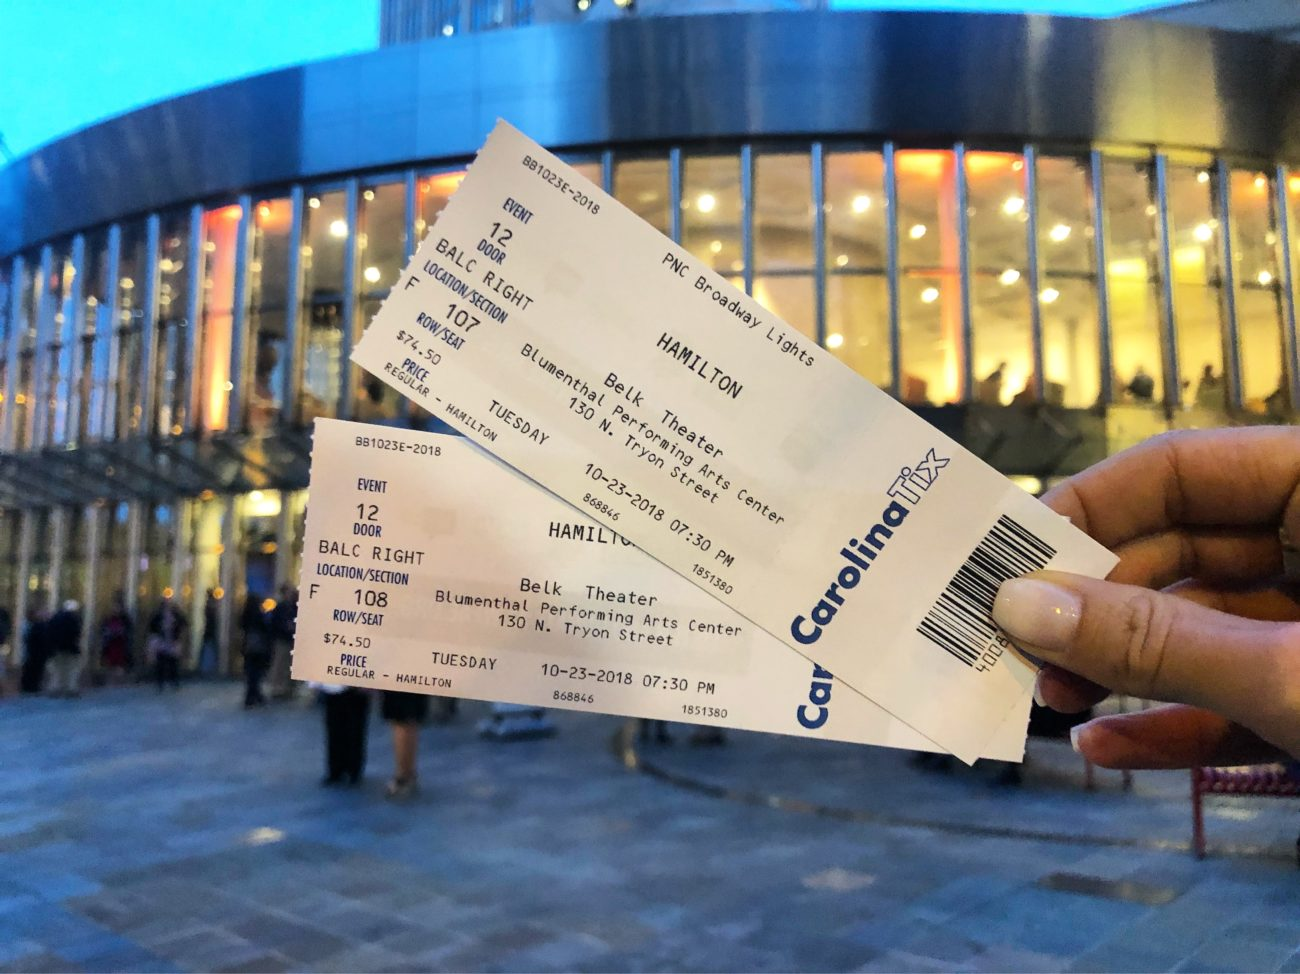 Win two tickets to see Hamilton in Charlotte on Tuesday, October 30